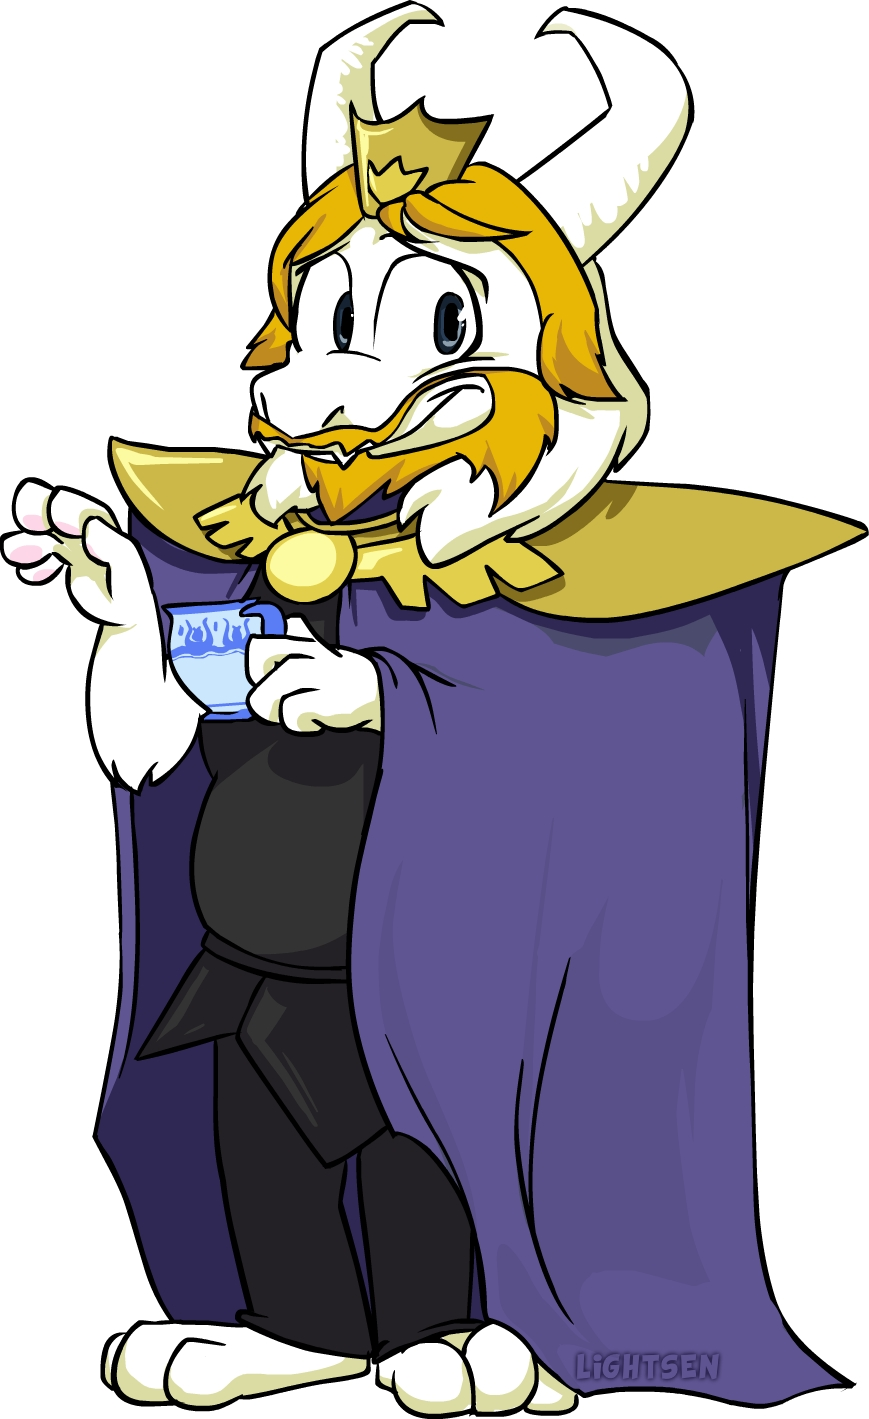 Asgore The Adorable By Naysu On DeviantArt